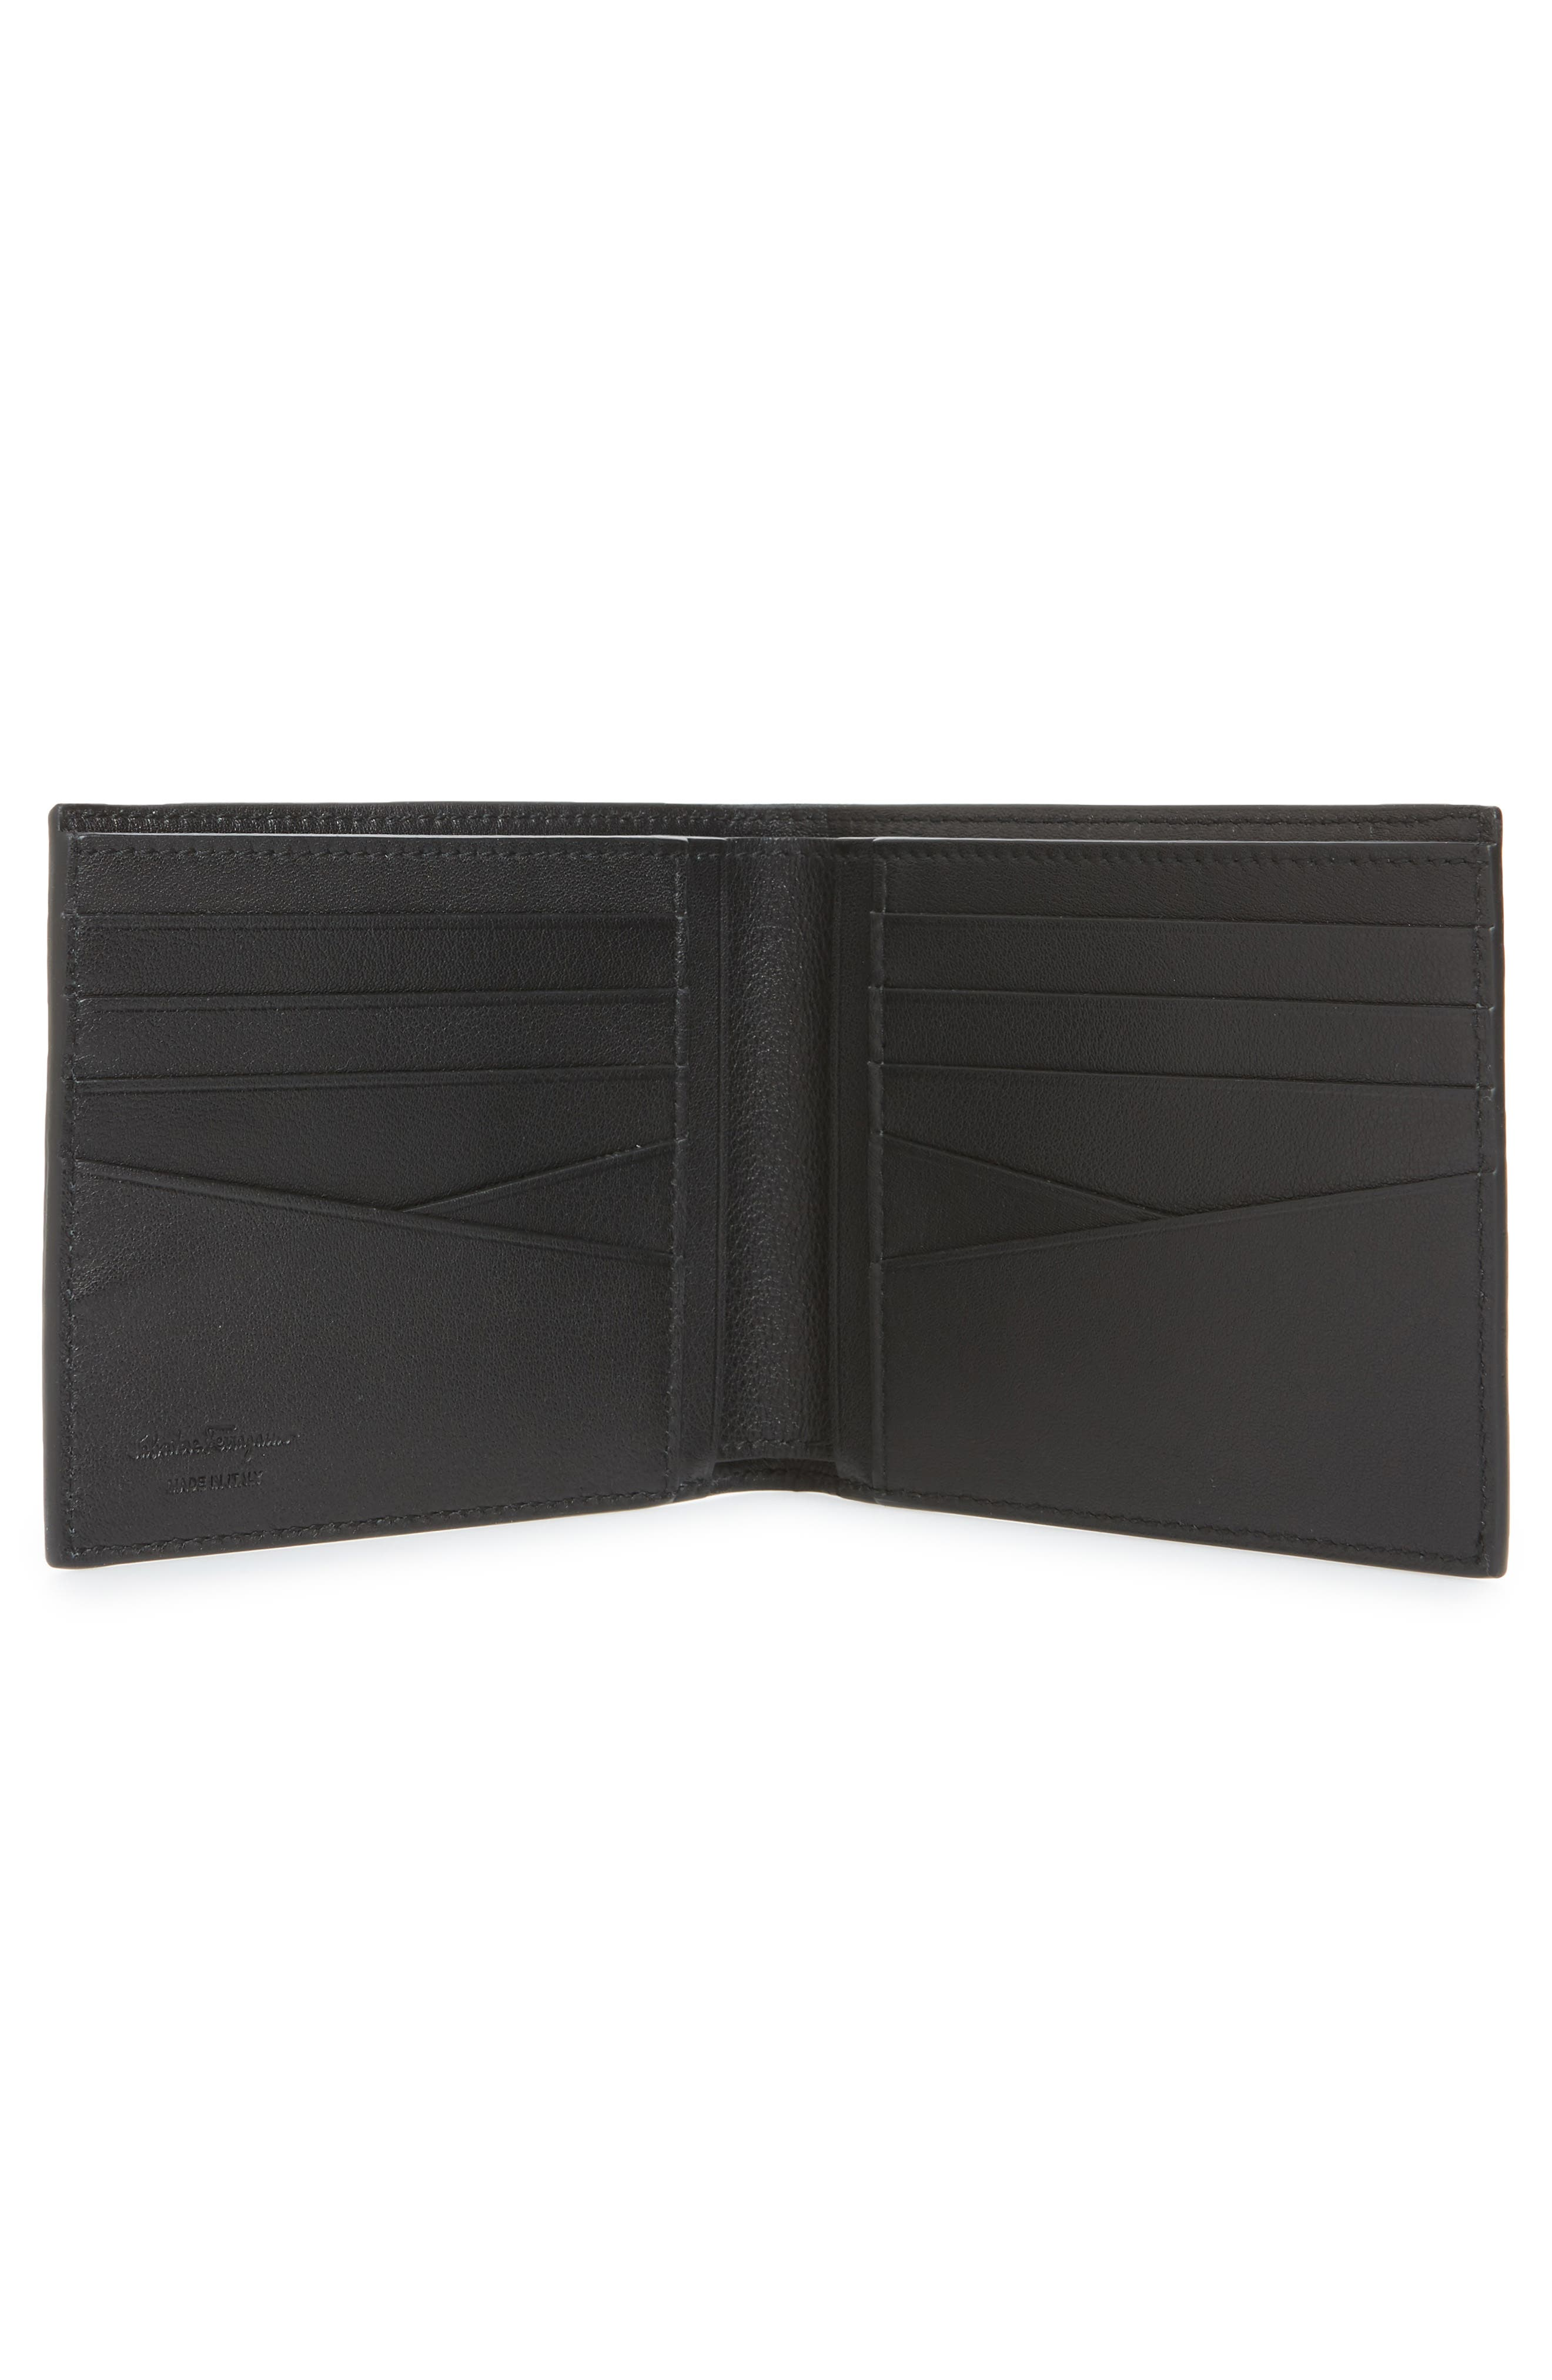 Glow Leather Wallet,                             Alternate thumbnail 2, color,